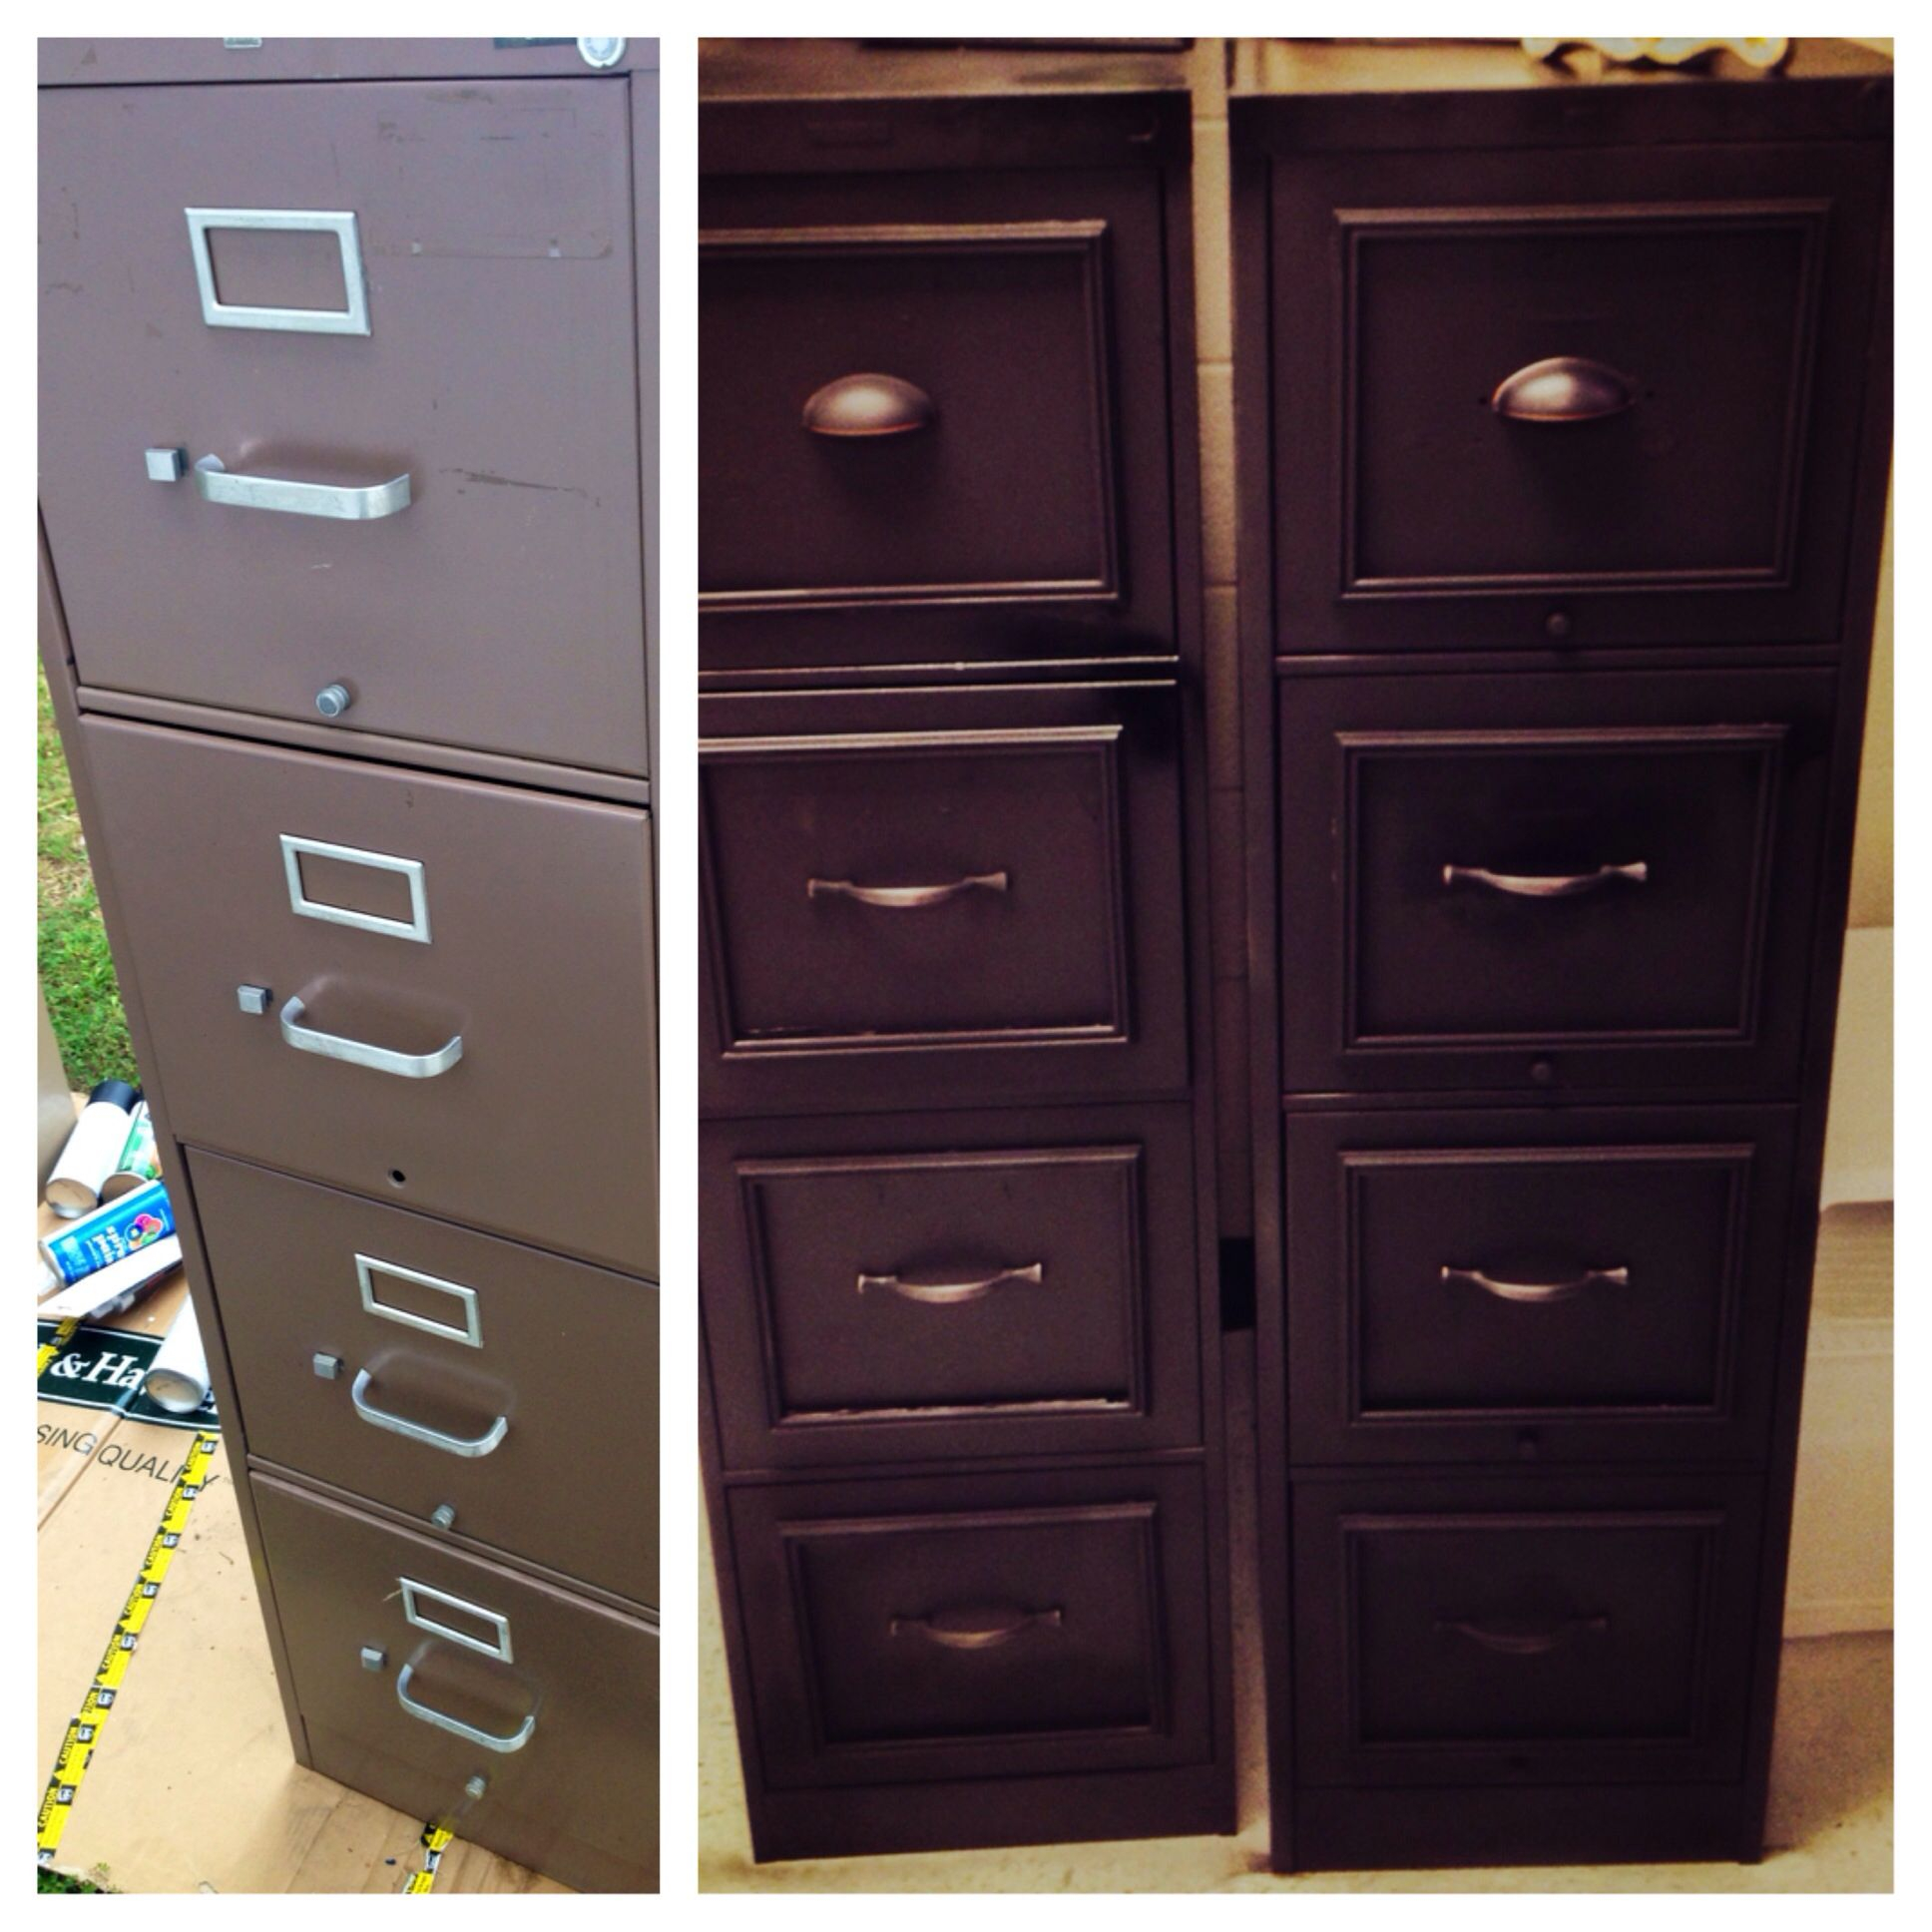 Diy File Cabinet Makeover For My Classroom I Took Off The Old inside measurements 1936 X 1936